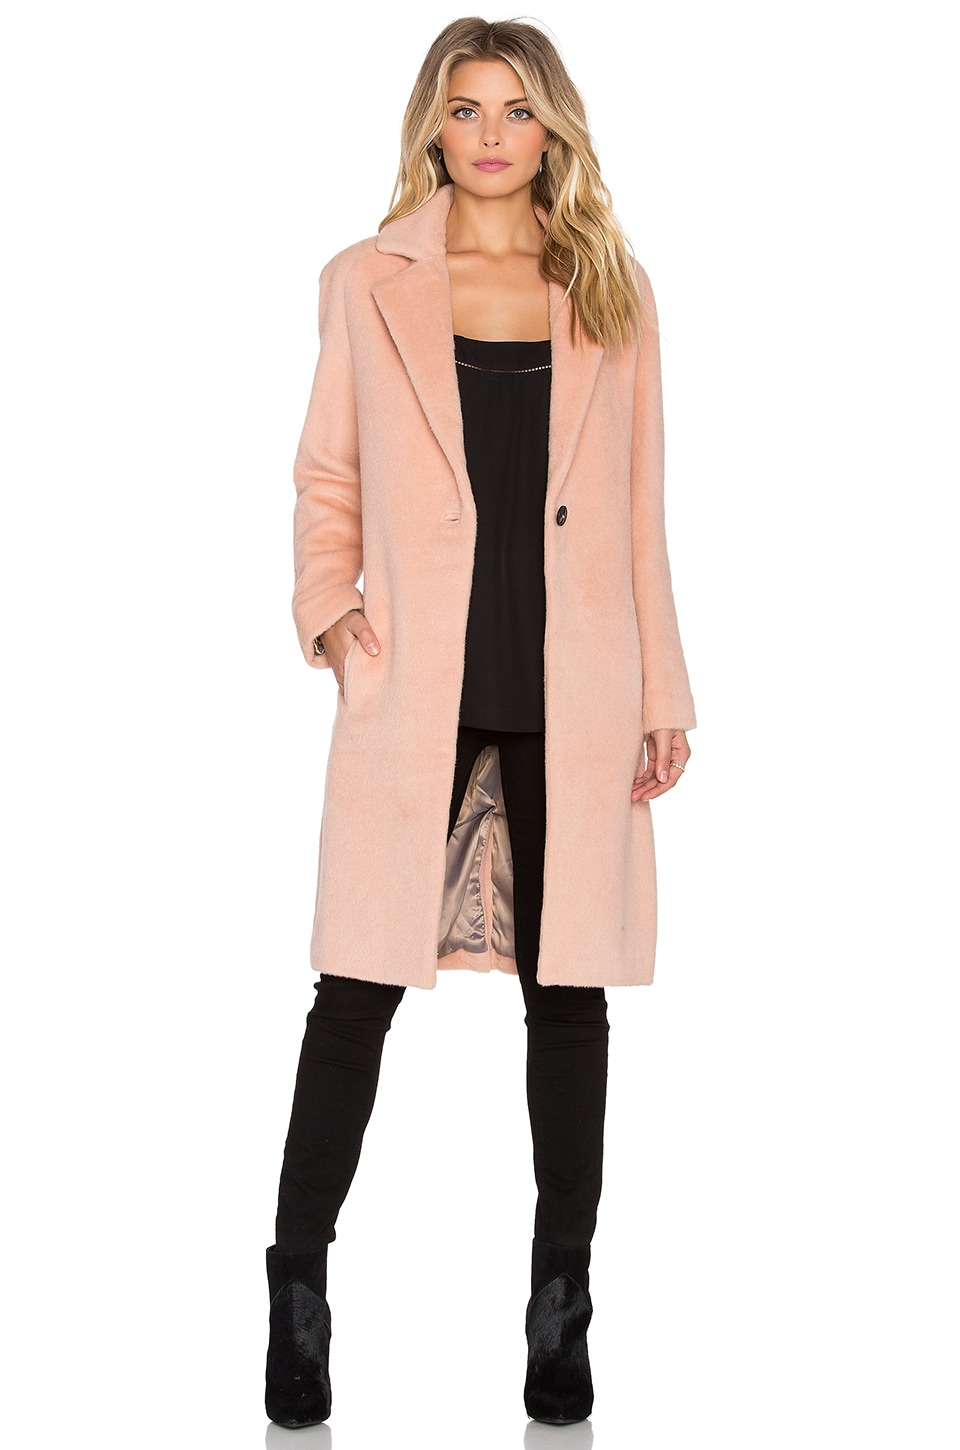 Halston Heritage Long Sleeve Slim Coat in Quartz Pink